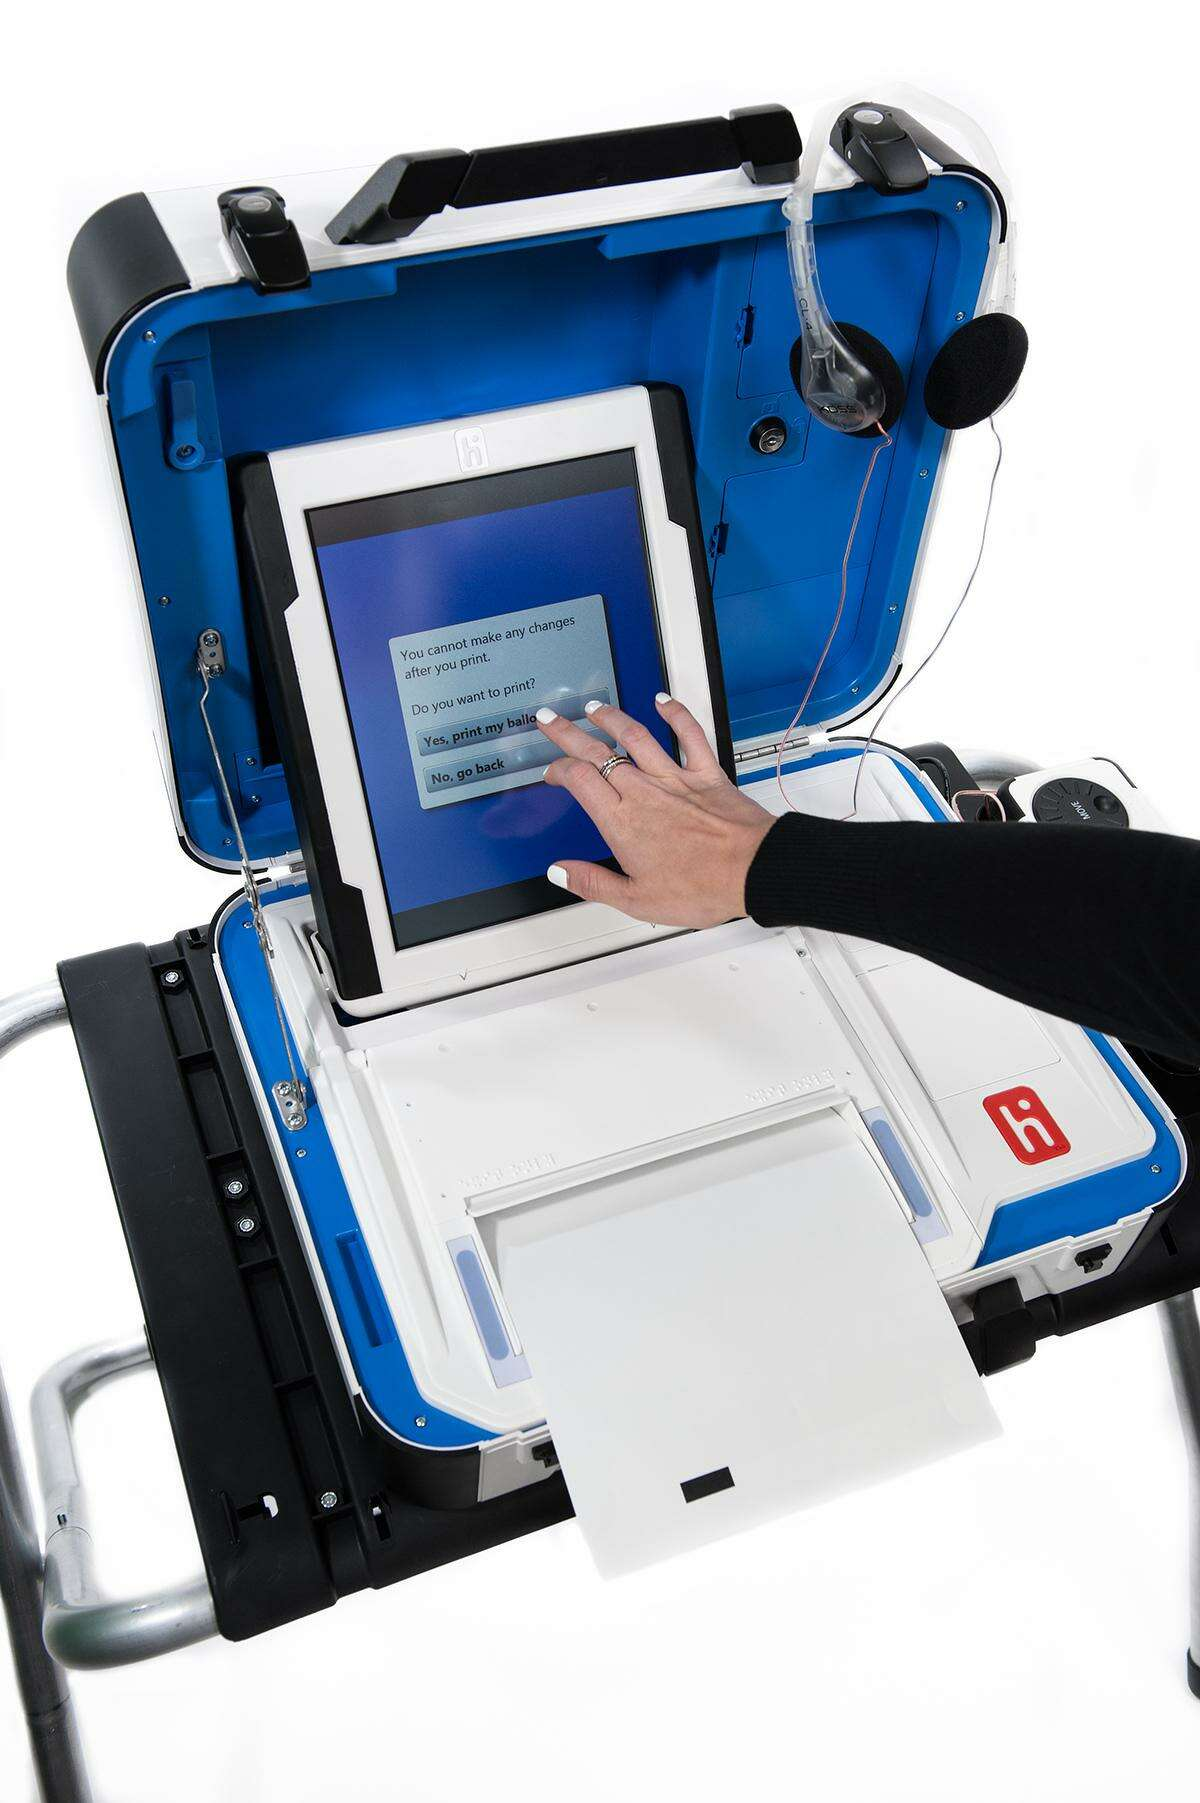 The new Hart InterCivic Verity Voting system allows uses to make selections via touch screen rather than having to scroll through the choices with the rotary wheel on the eSlate machines the county has been using since 2002. The new machines will produce a paper ballot that can be audited later.